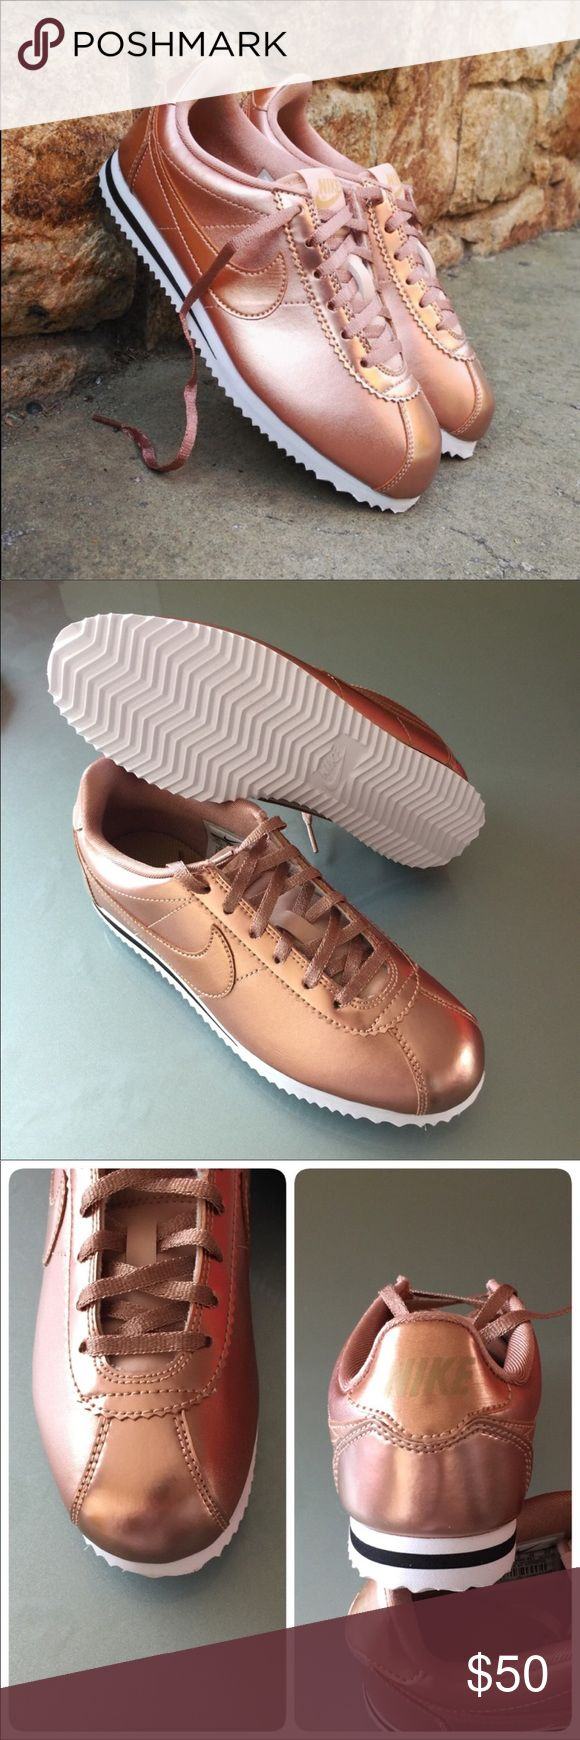 🦃New🦃 NIKE rose gold Cortez SE GS~ 5.5Y brand new no lid size 5.5Y fits women's 7.5 metallic red bronze comes from smoke free home guaranteed 100% authentic N1700020 Nike Shoes Sneakers